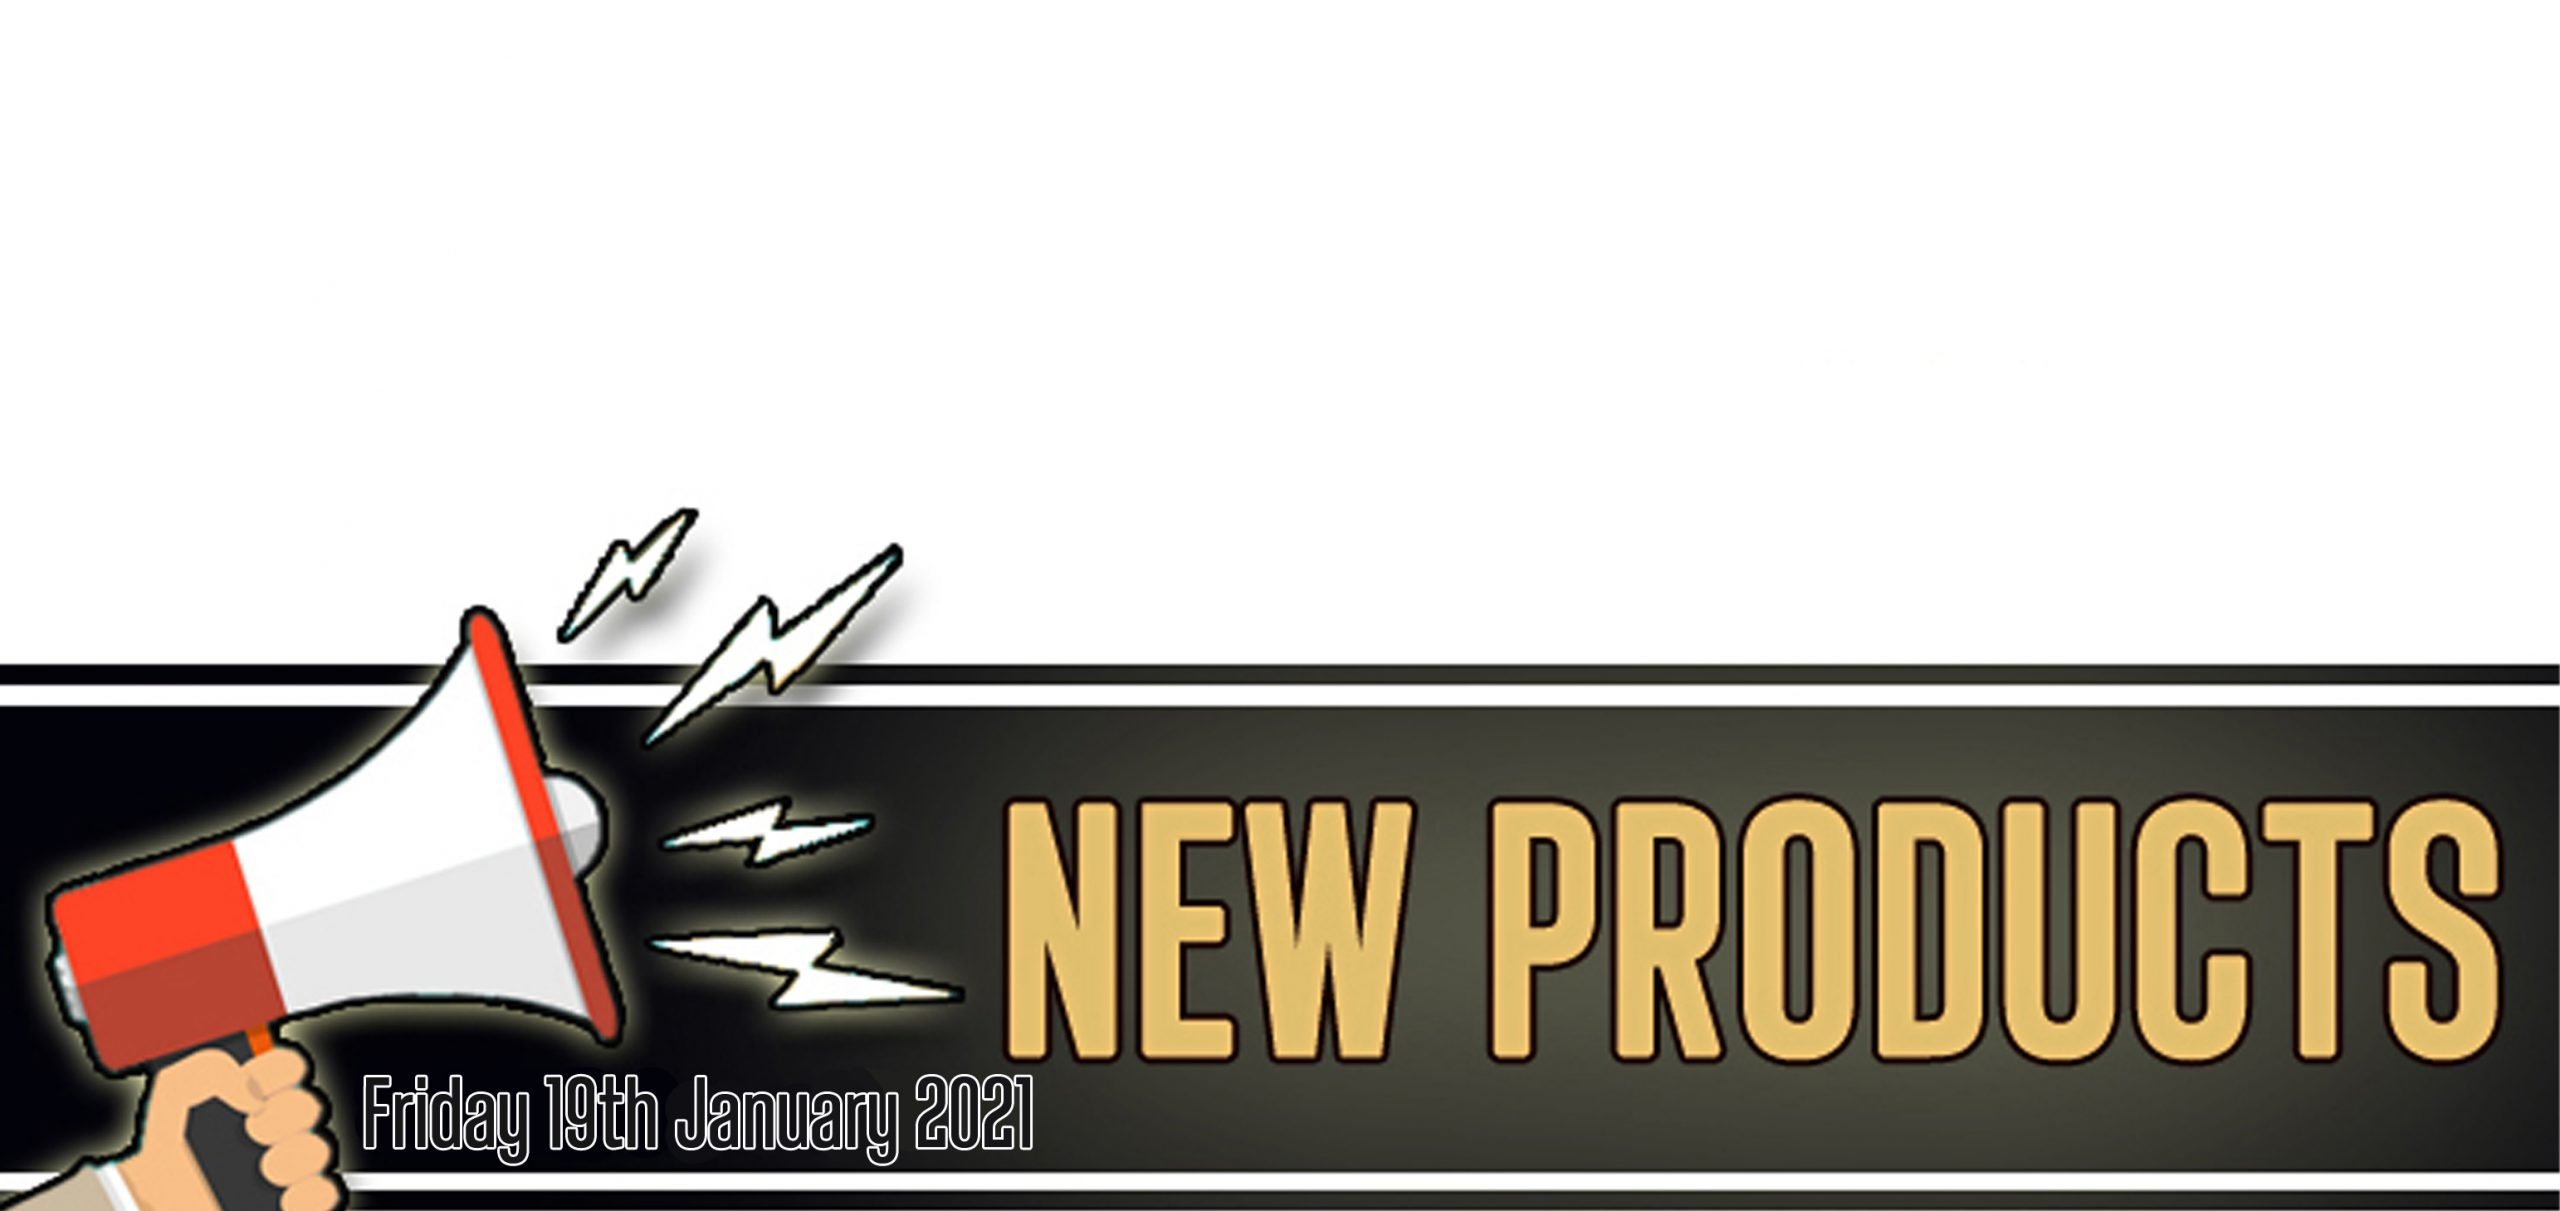 New Products for February 19th 2021